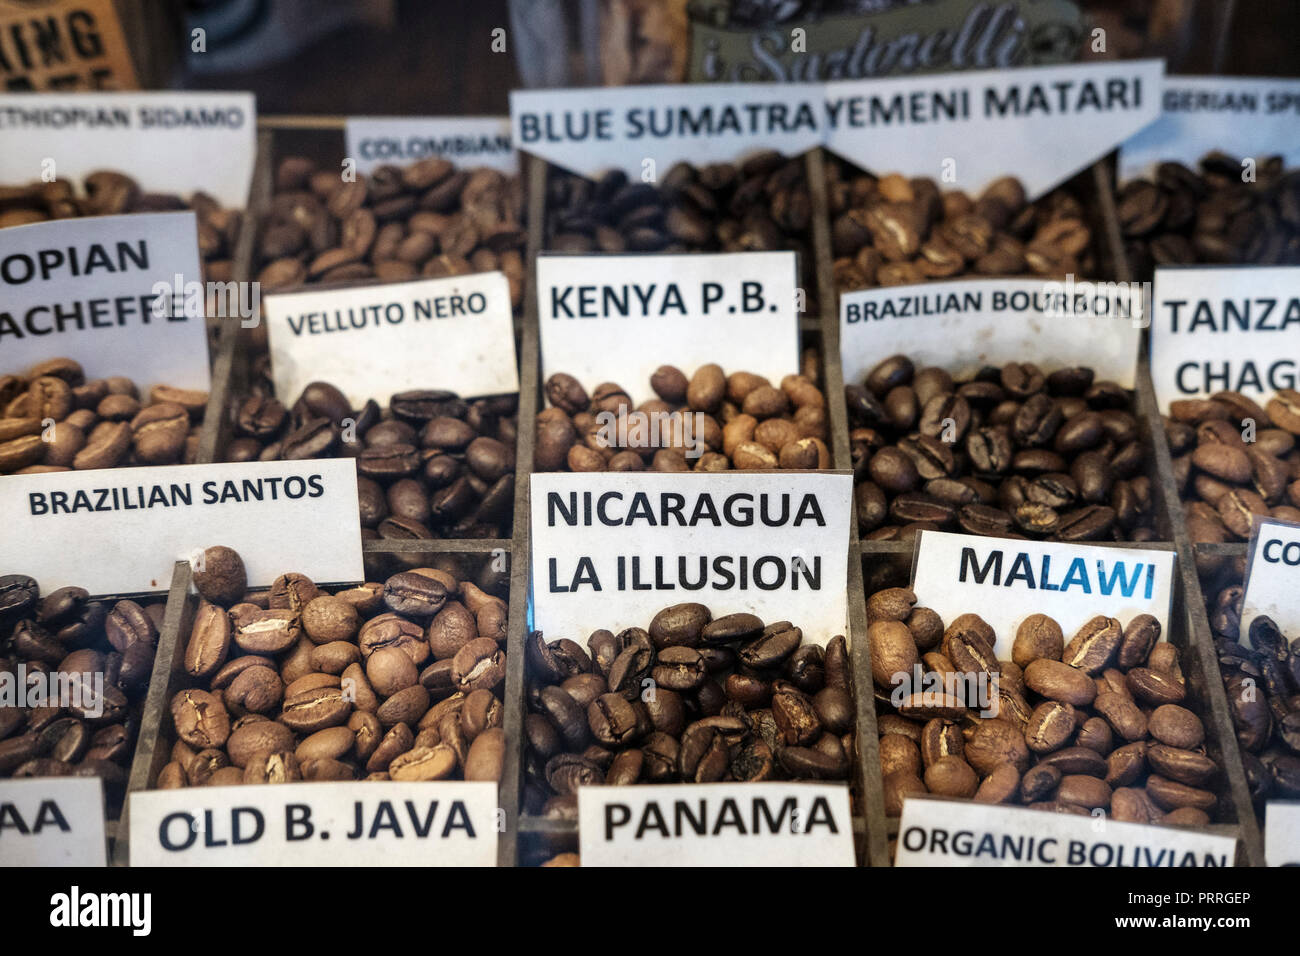 UK,London,Soho-algerian coffee company- variety of coffee beans on display - Stock Image